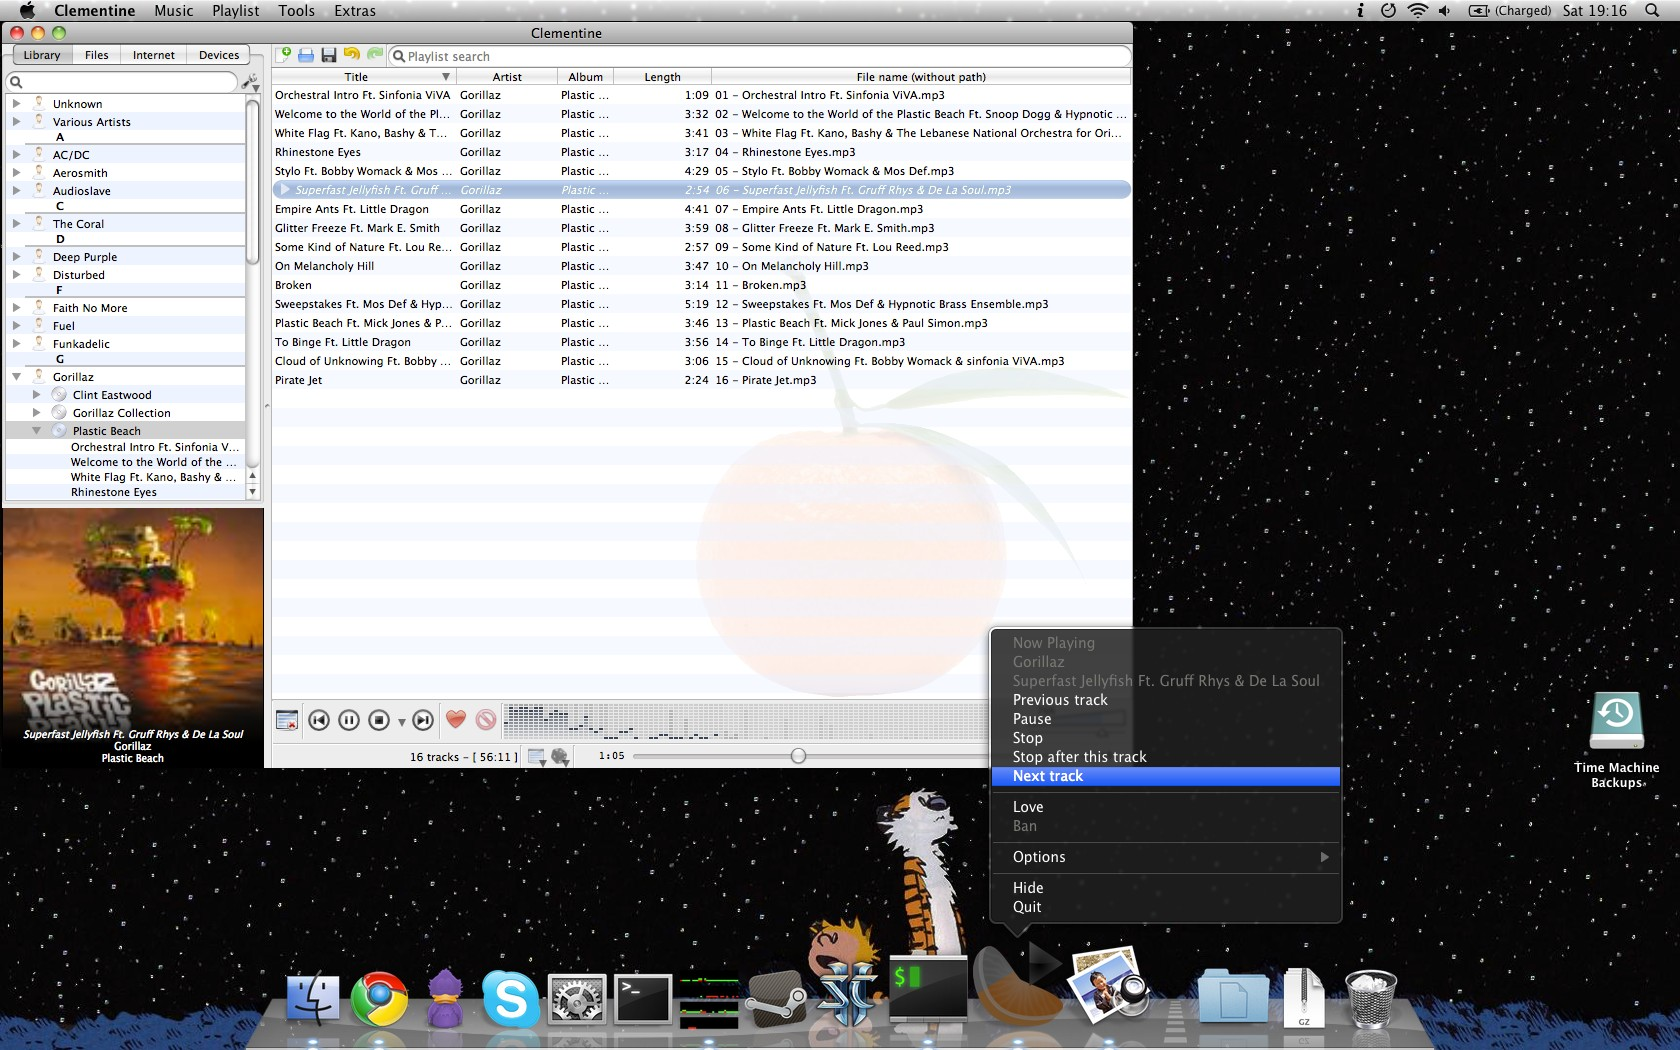 How to Burn an Audio CD on Mac OS X 9 Steps (with Pictures)